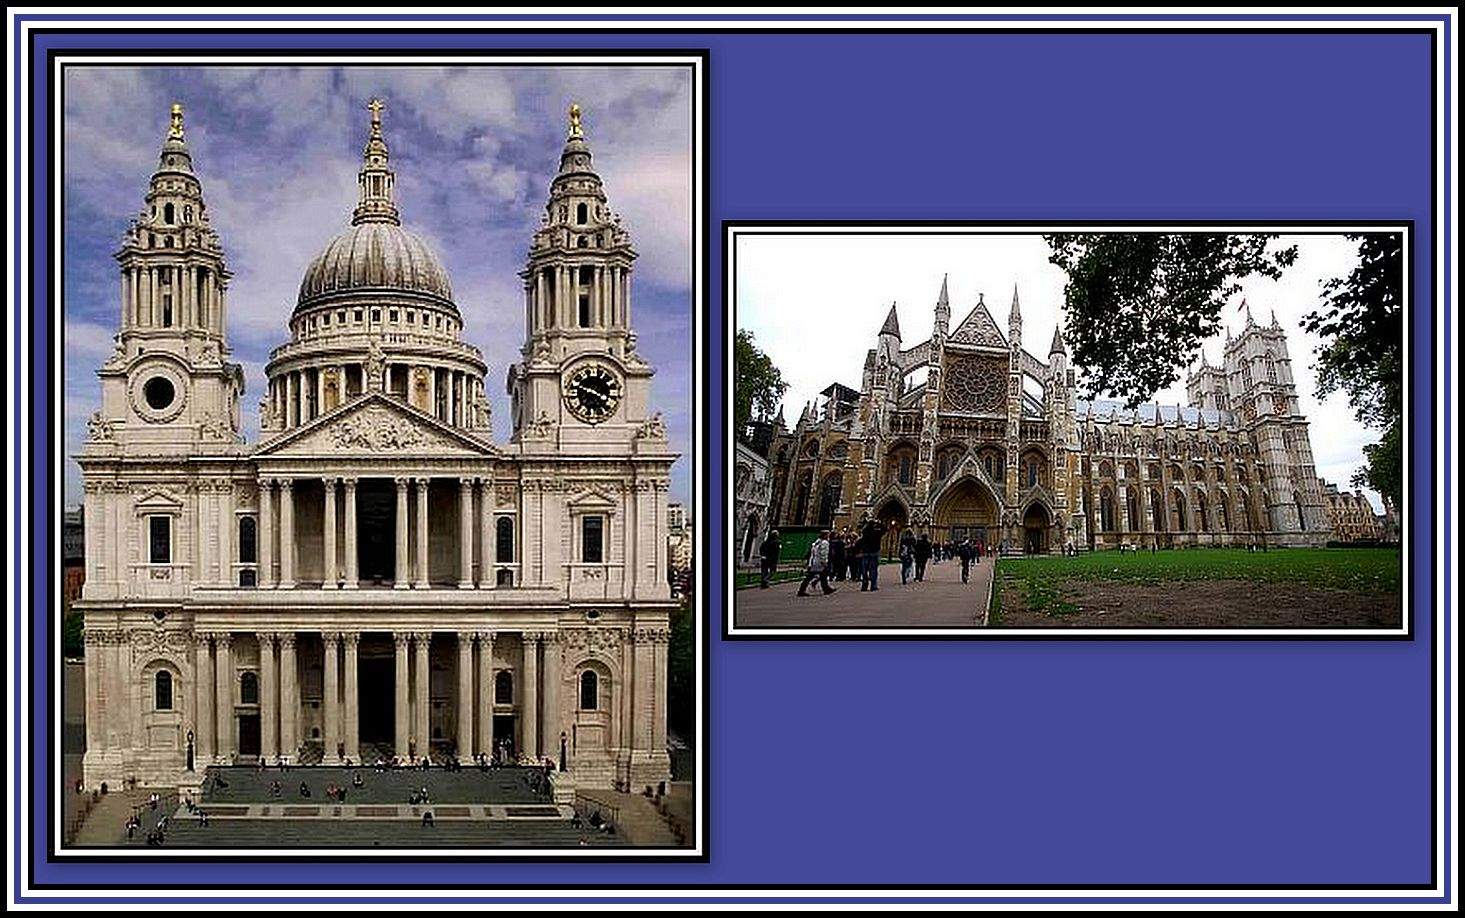 St. Paul's & Westminster Abbey Collage